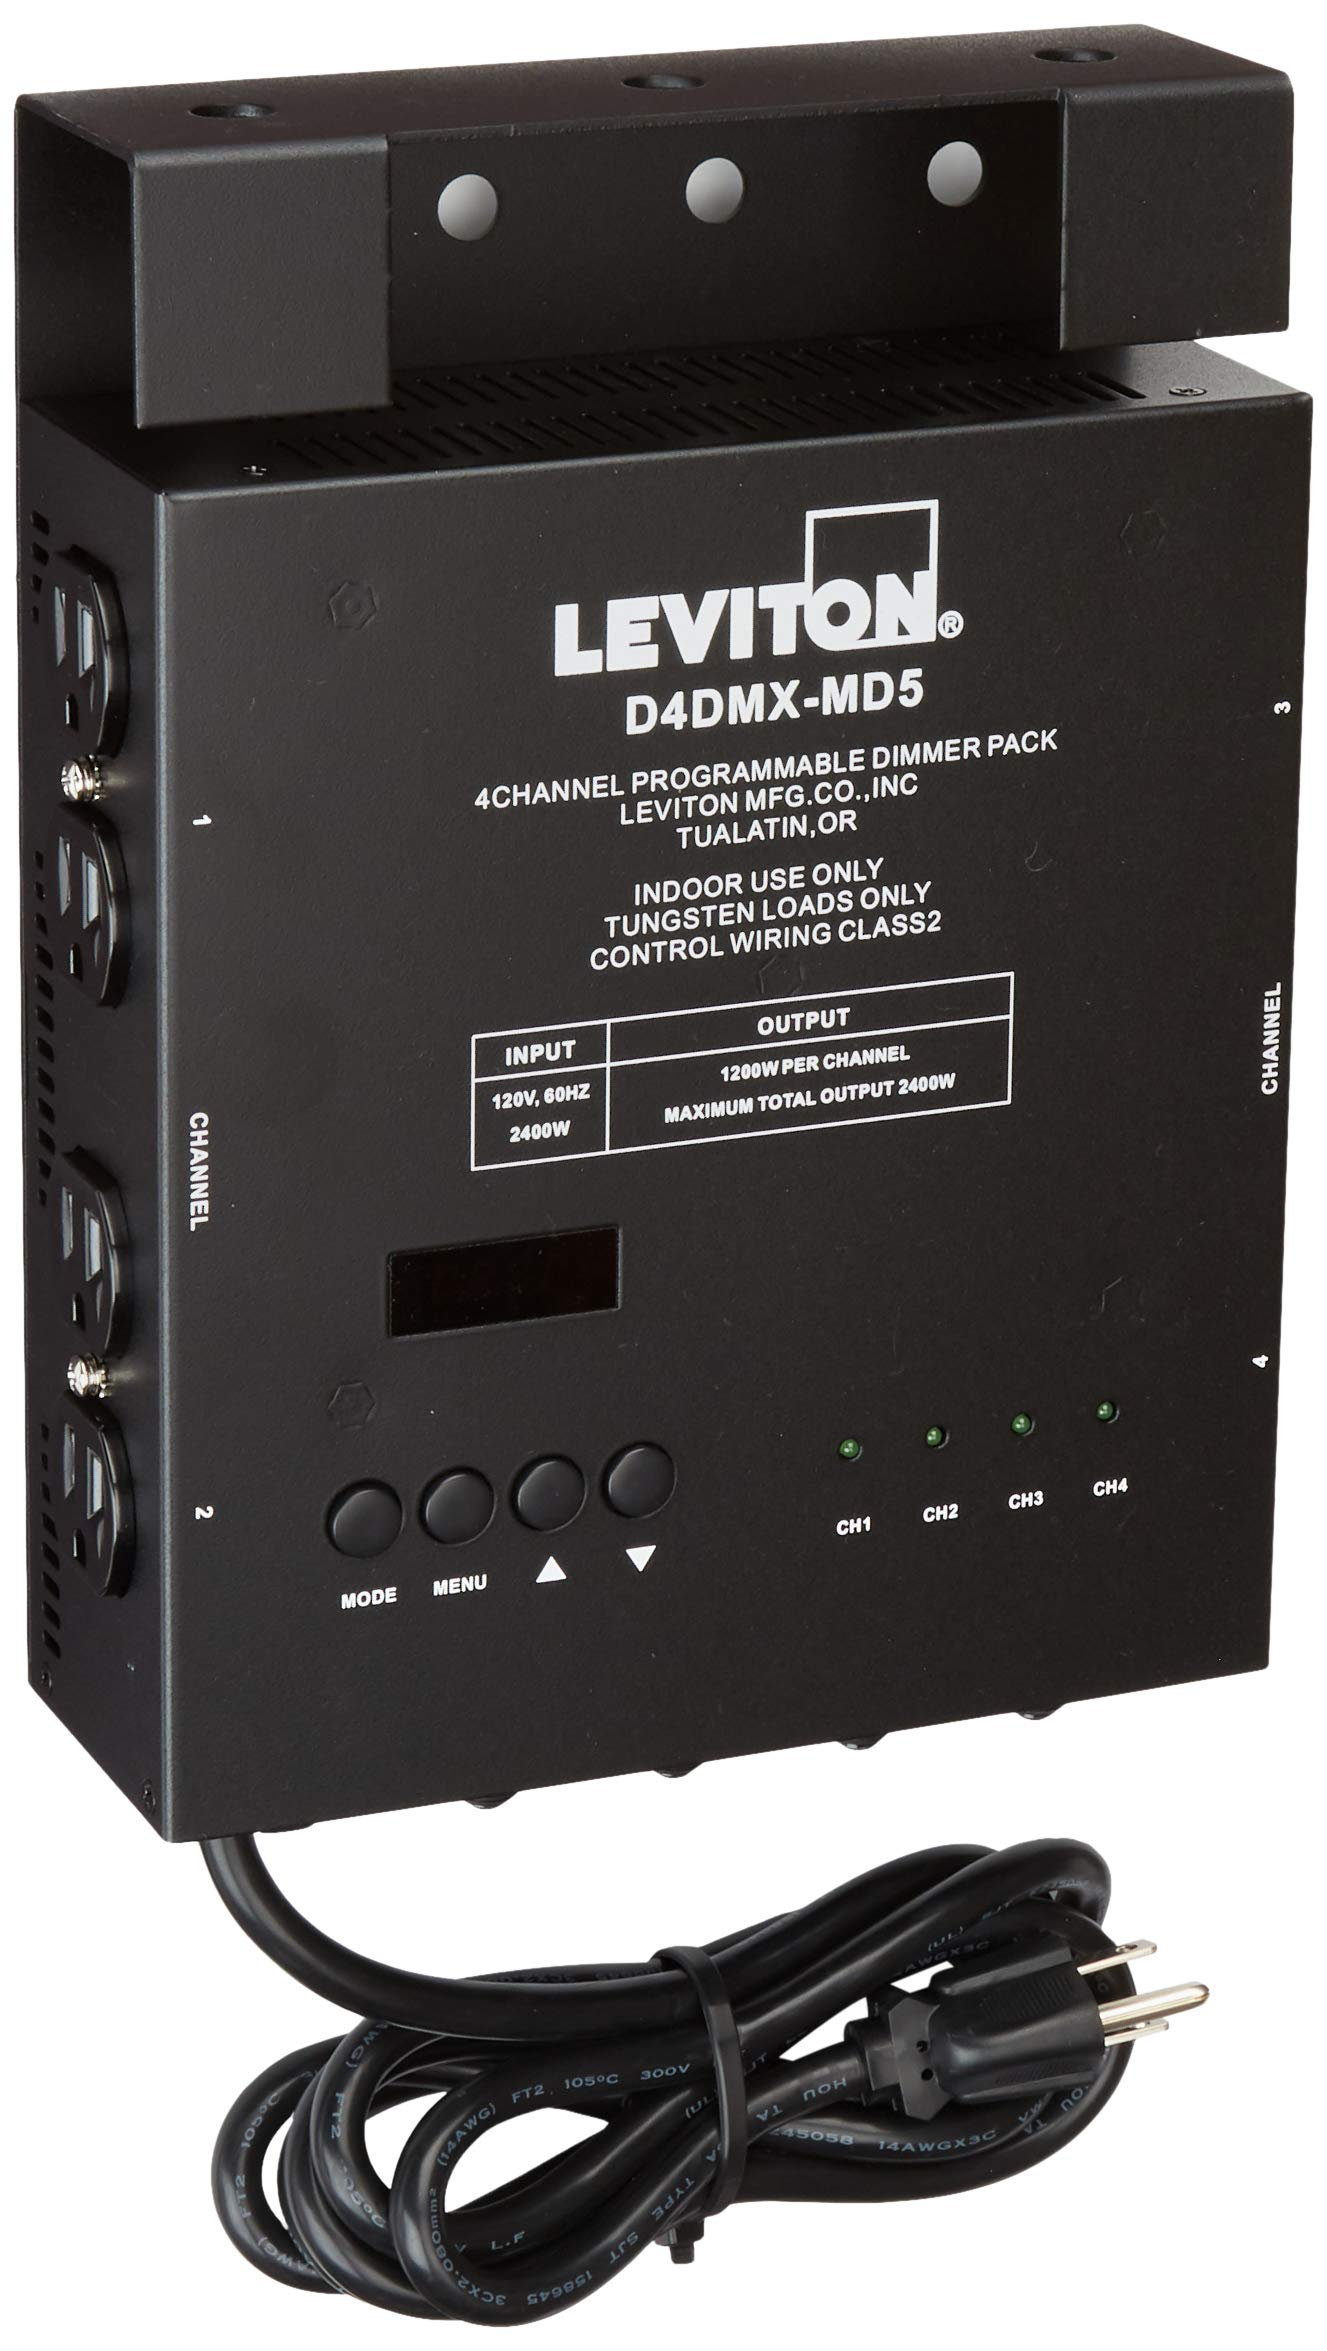 Leviton D4DMX-MD5 4-Channel Programmable Dimmer Pack Integrating Stand-Alone, 3-Pin DMX 15A Power Cord